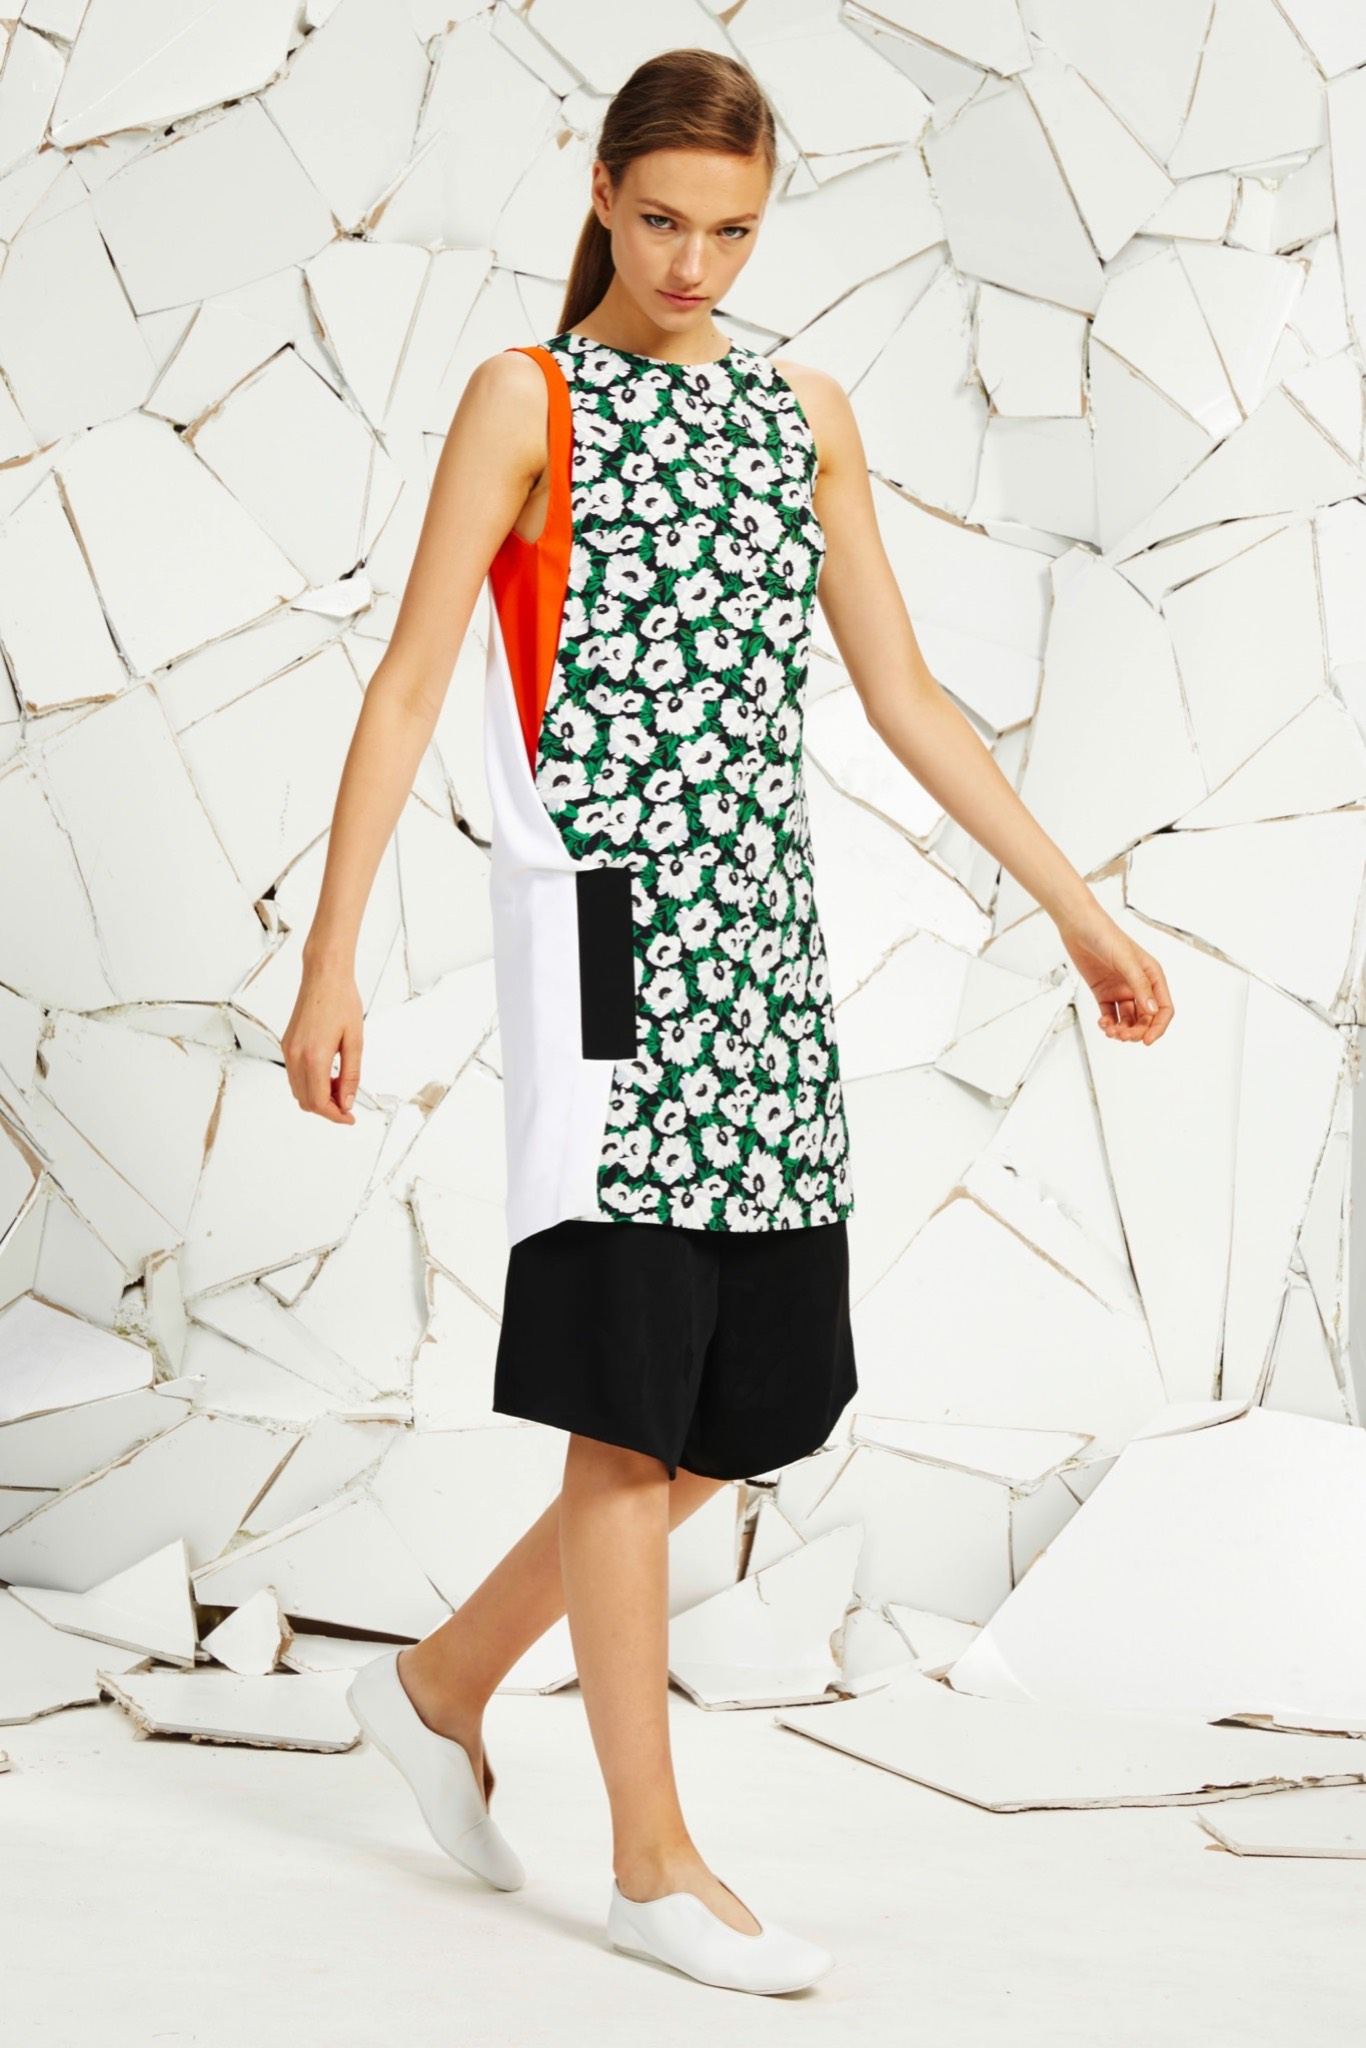 stella-mccartney-resort-2016-the-impression-12